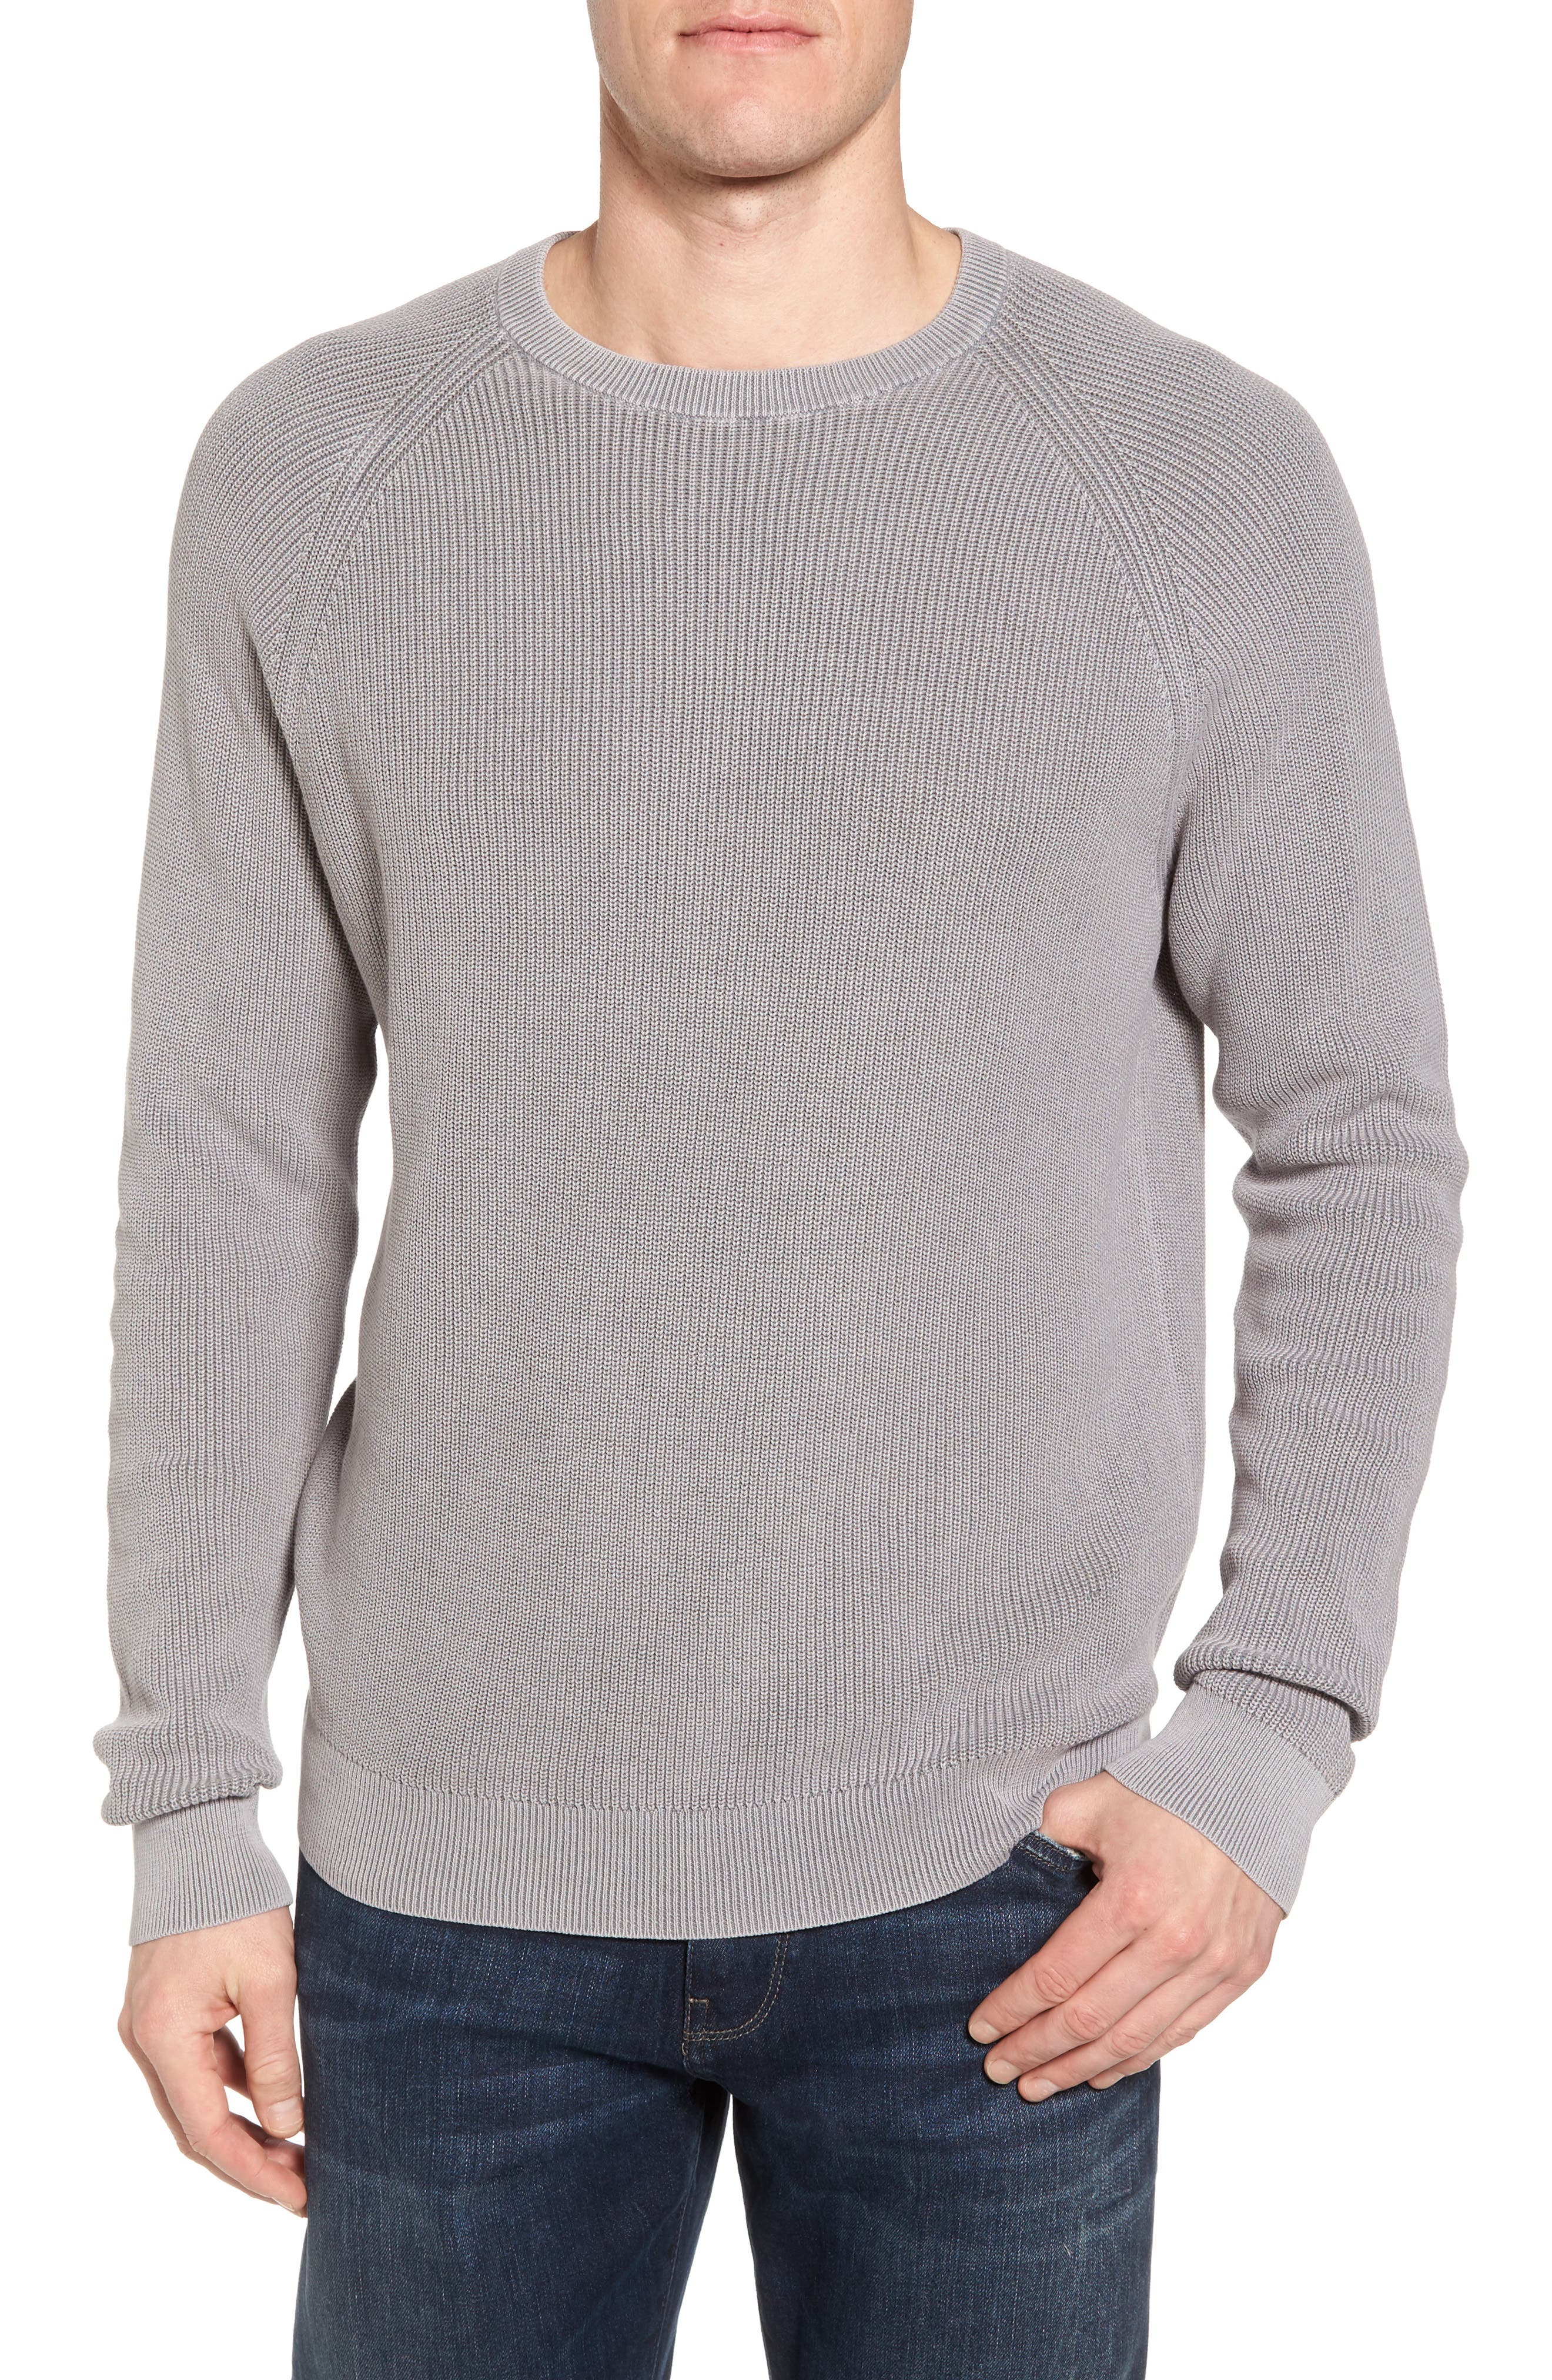 Ribbed Sweater,                             Main thumbnail 1, color,                             Grey Weather